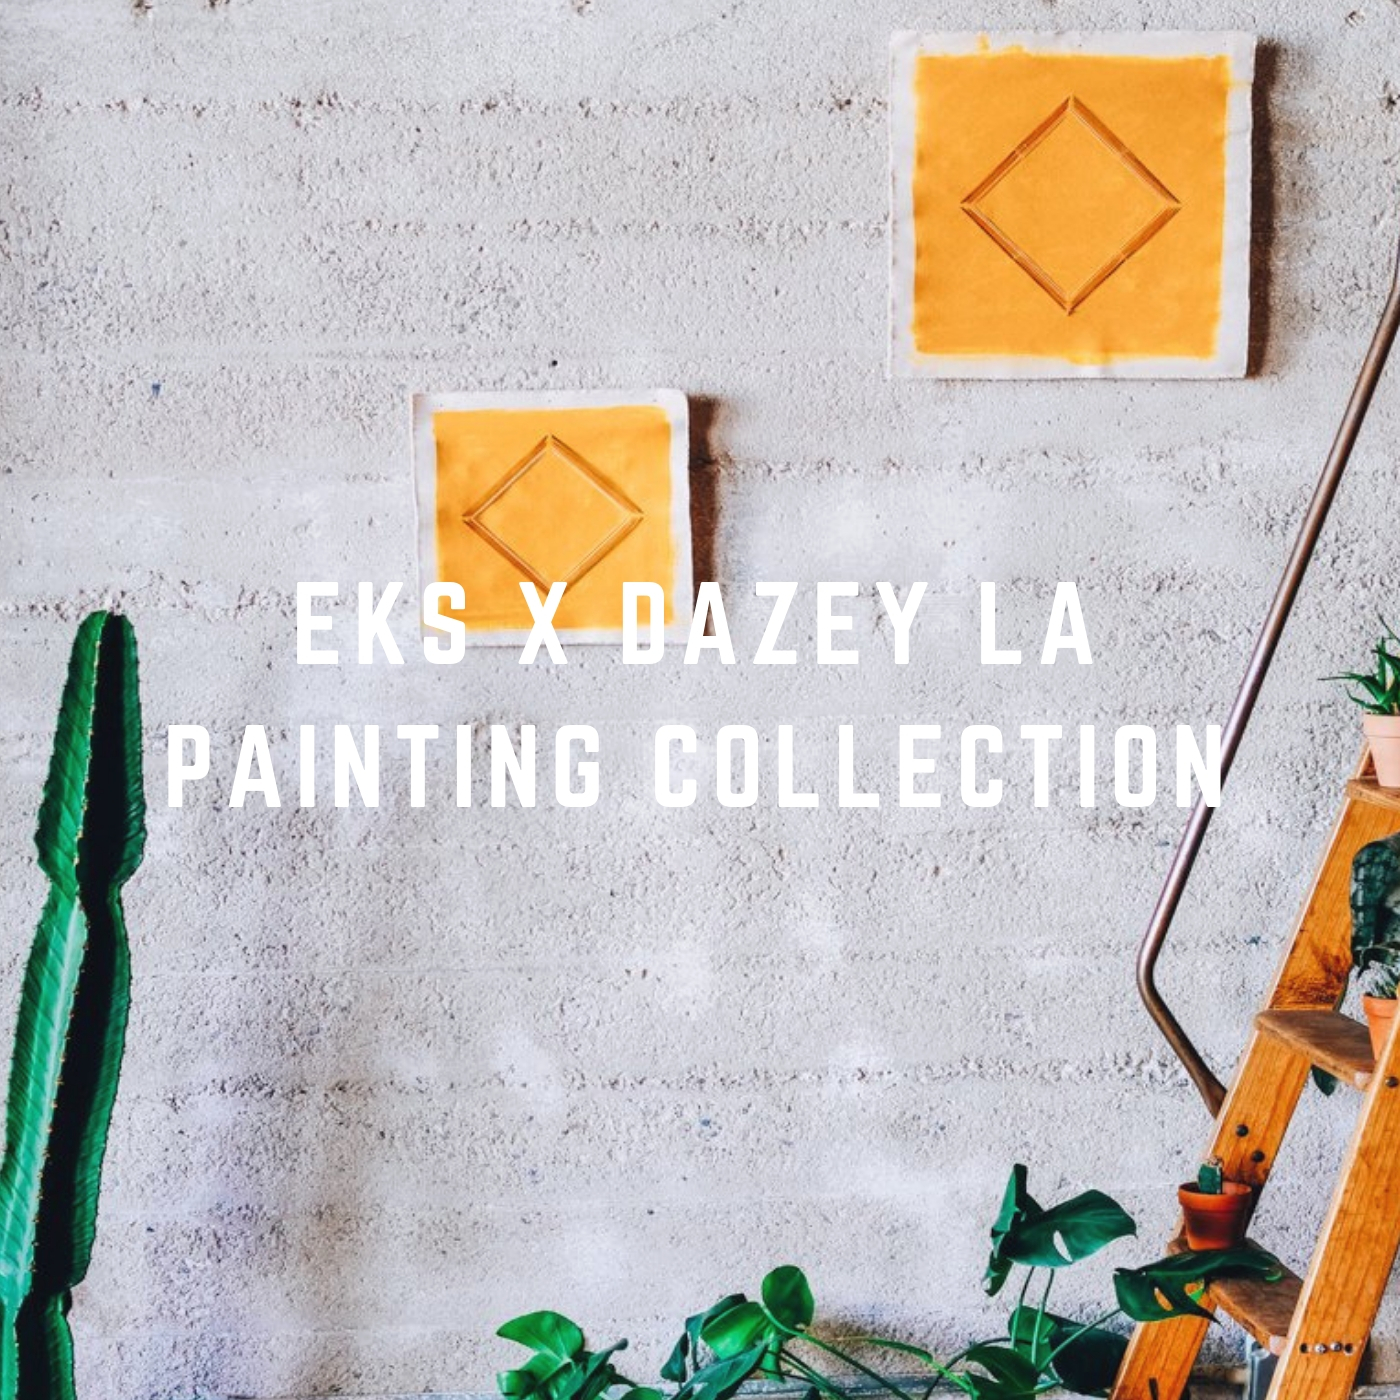 An EKS x DAZEY LA Painting Collection With Major Desert Vibes